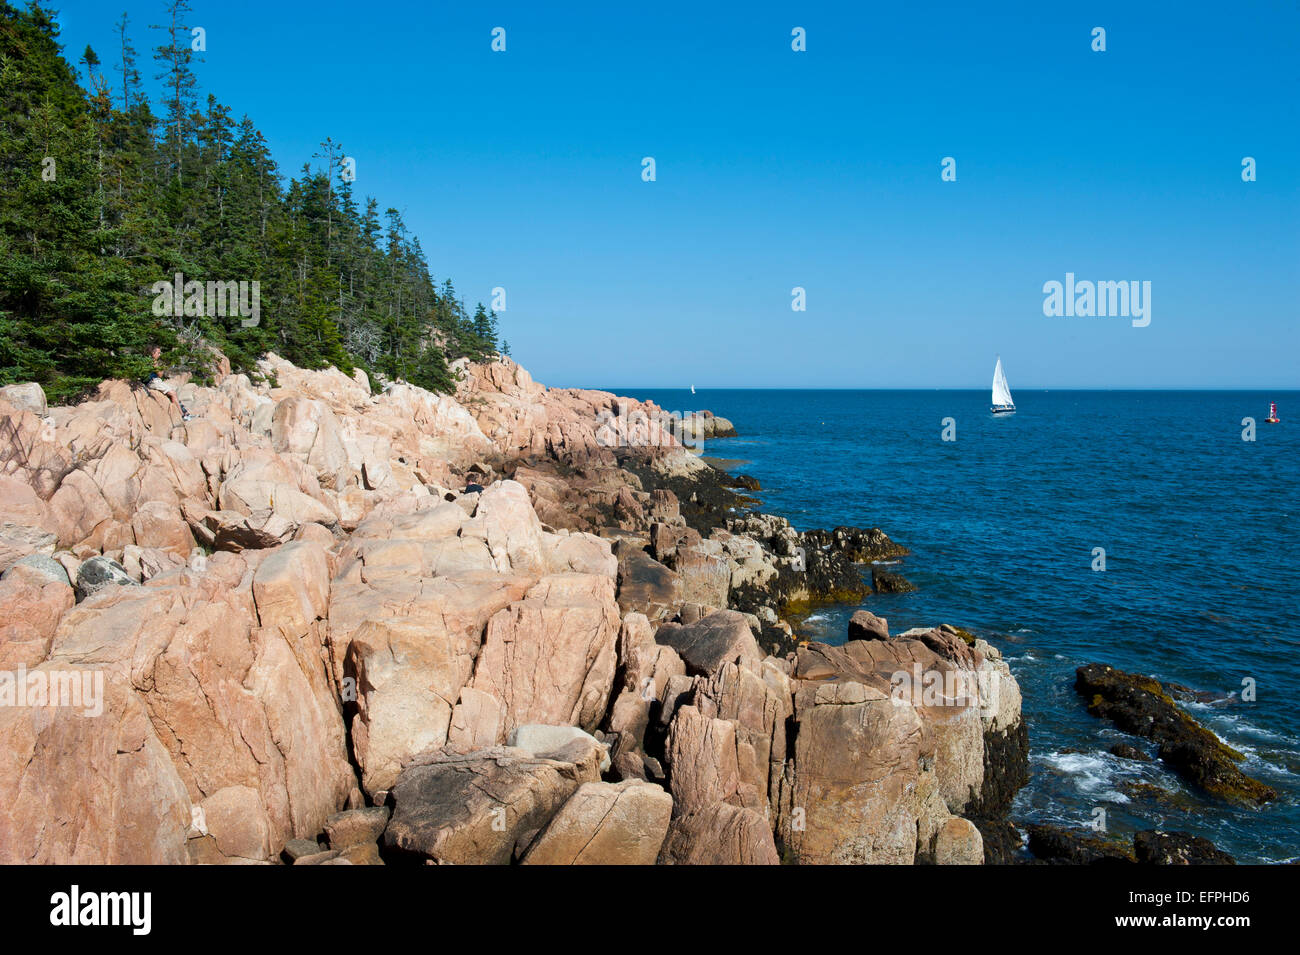 Sailing boat at the rocky cliffs of Bass Harbor Head Lighthouse, Acadia National Park, Maine, New England, USA - Stock Image